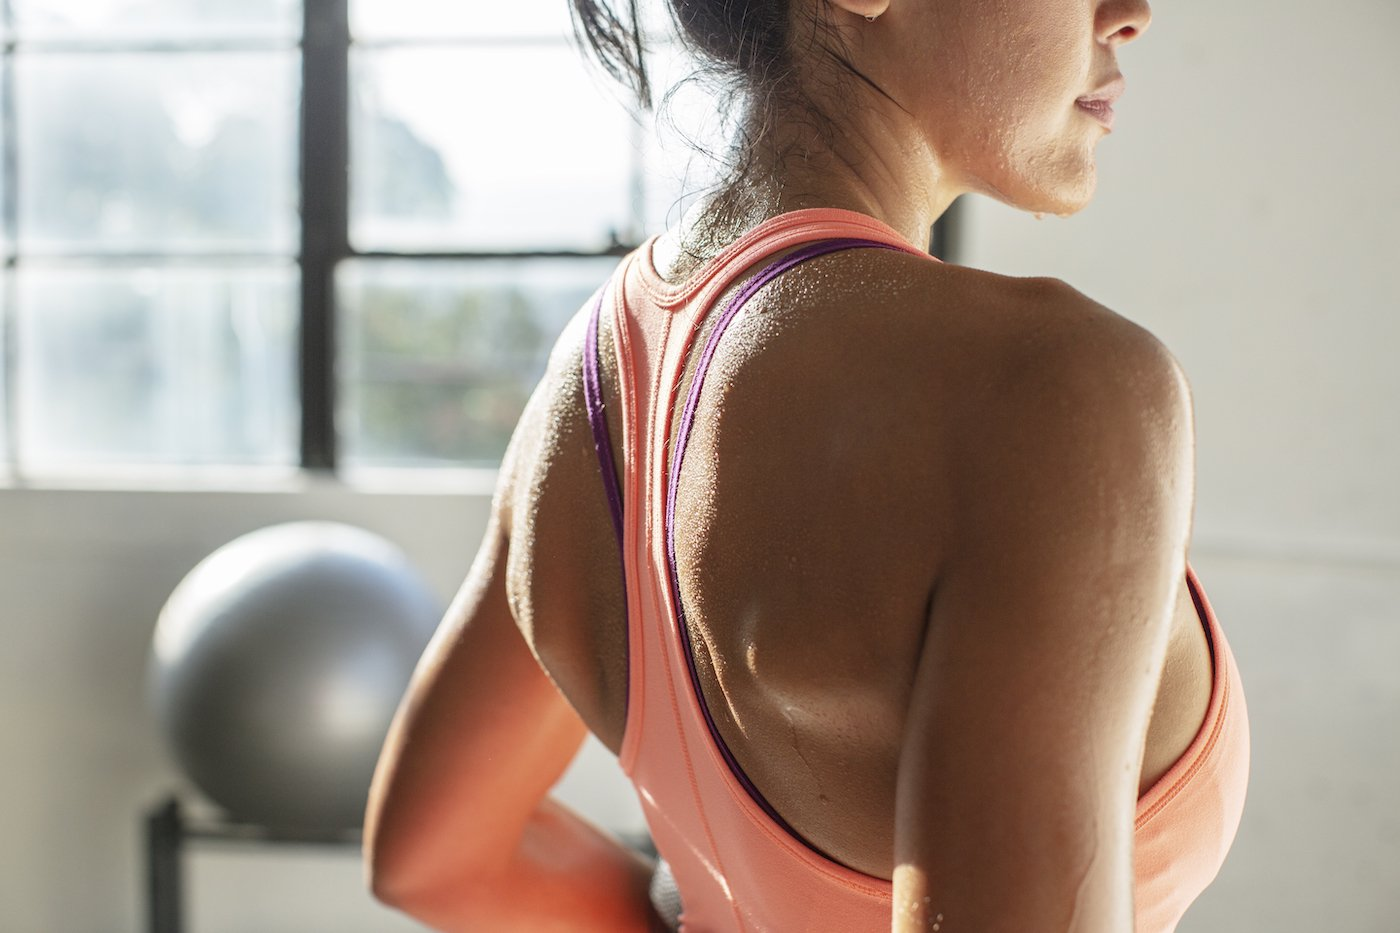 Thumbnail for Here to Break Hearts: Sweating Isn't Always the Best Indicator of a Good Workout